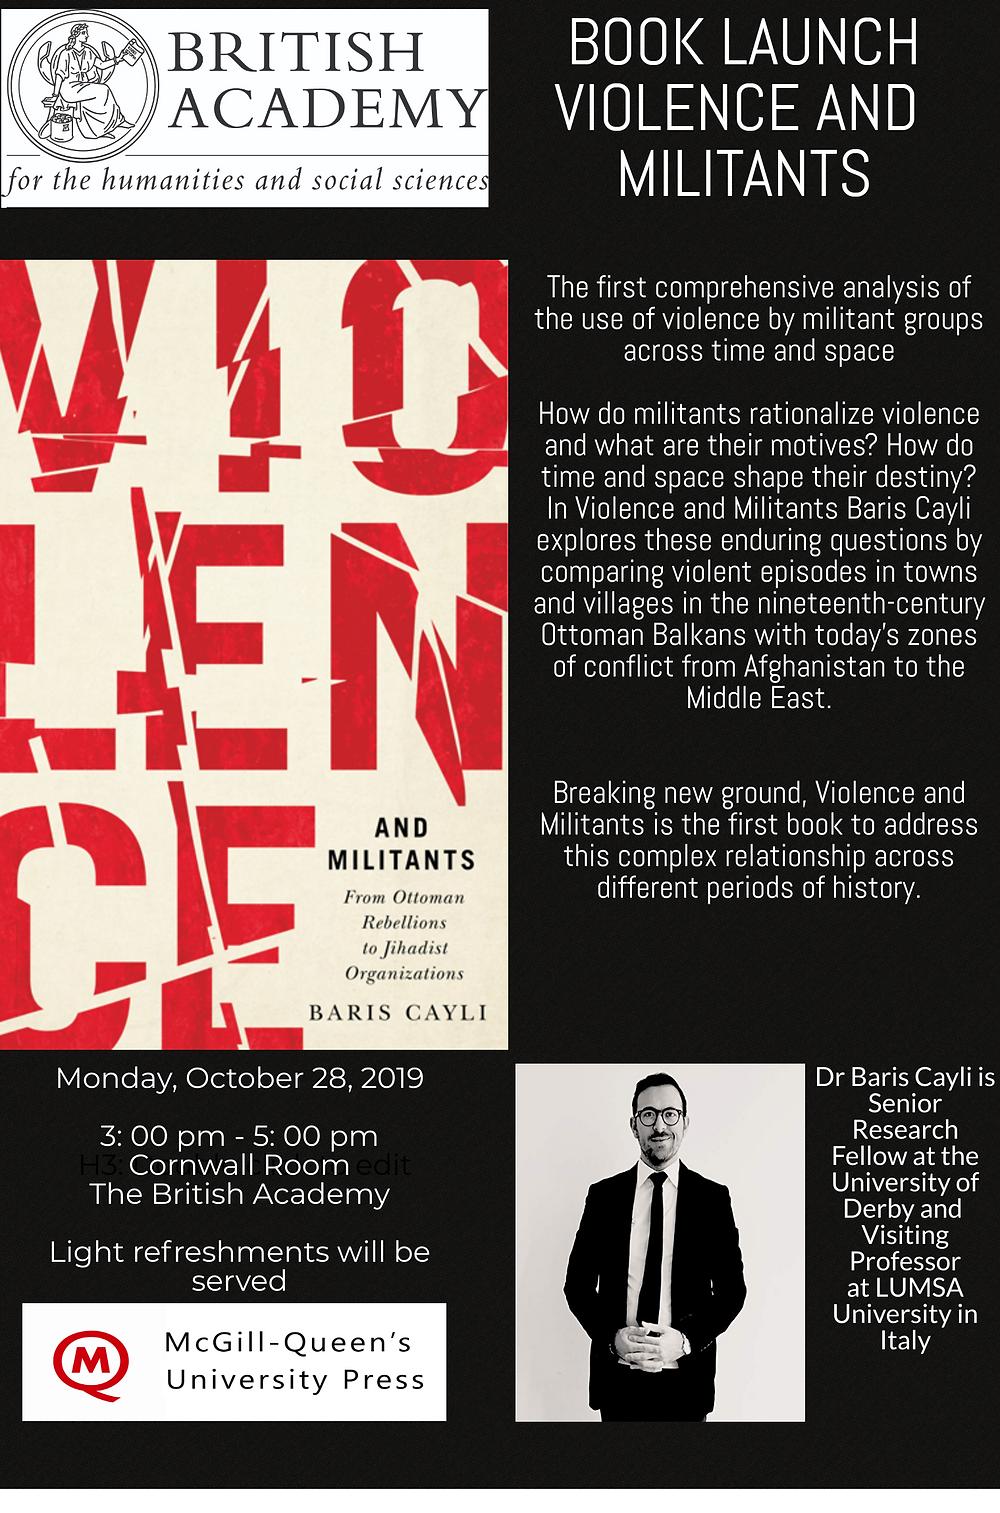 Violence and Militants Book Launch